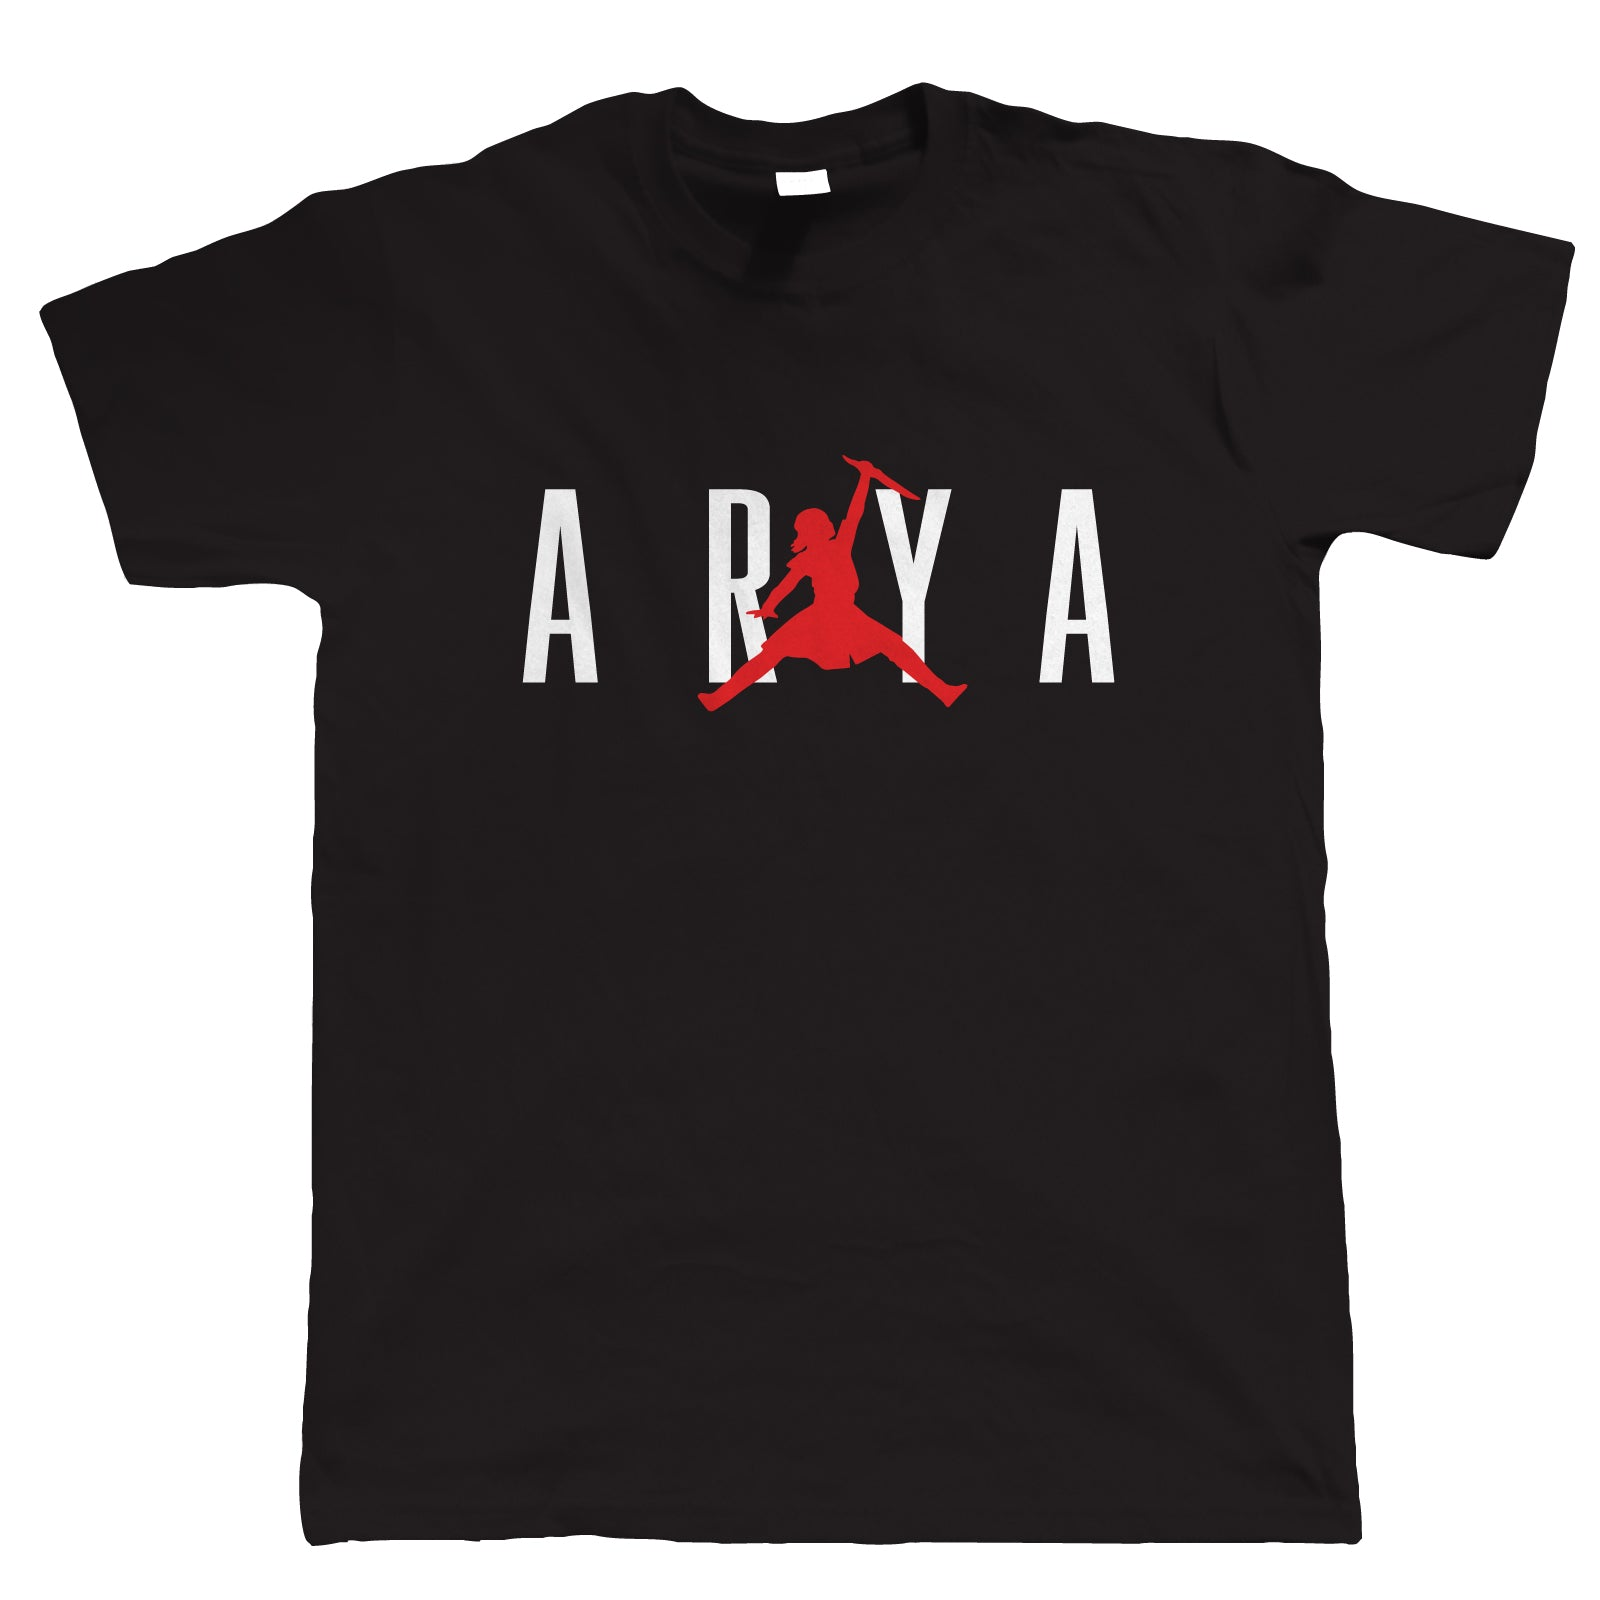 Arya GOT TV Movie Inspired Mens T Shirt | TV Movie Fan Geek Fantasy Fiction Series Strike Move | Christmas Birthday Present Gift Him Dad